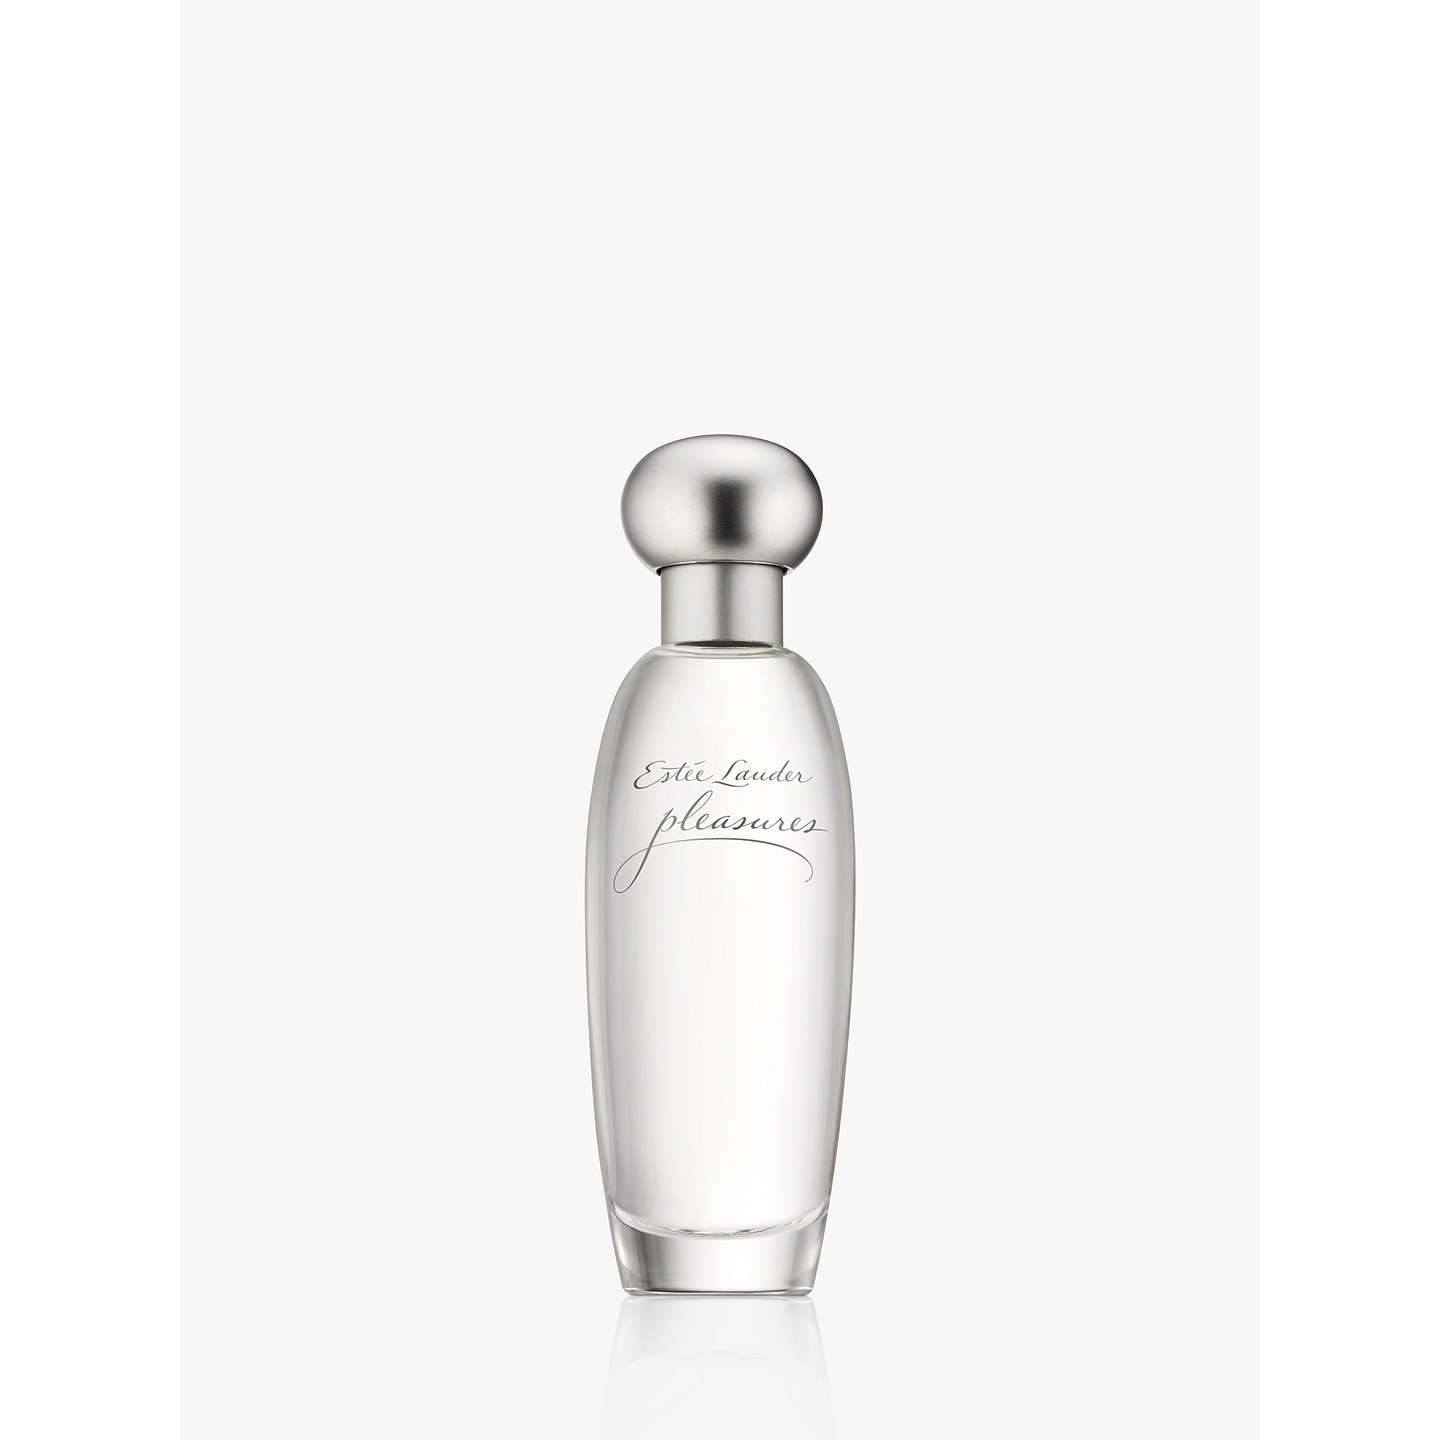 BuyEstée Lauder Pleasures Eau de Parfum, 30ml Online at johnlewis.com